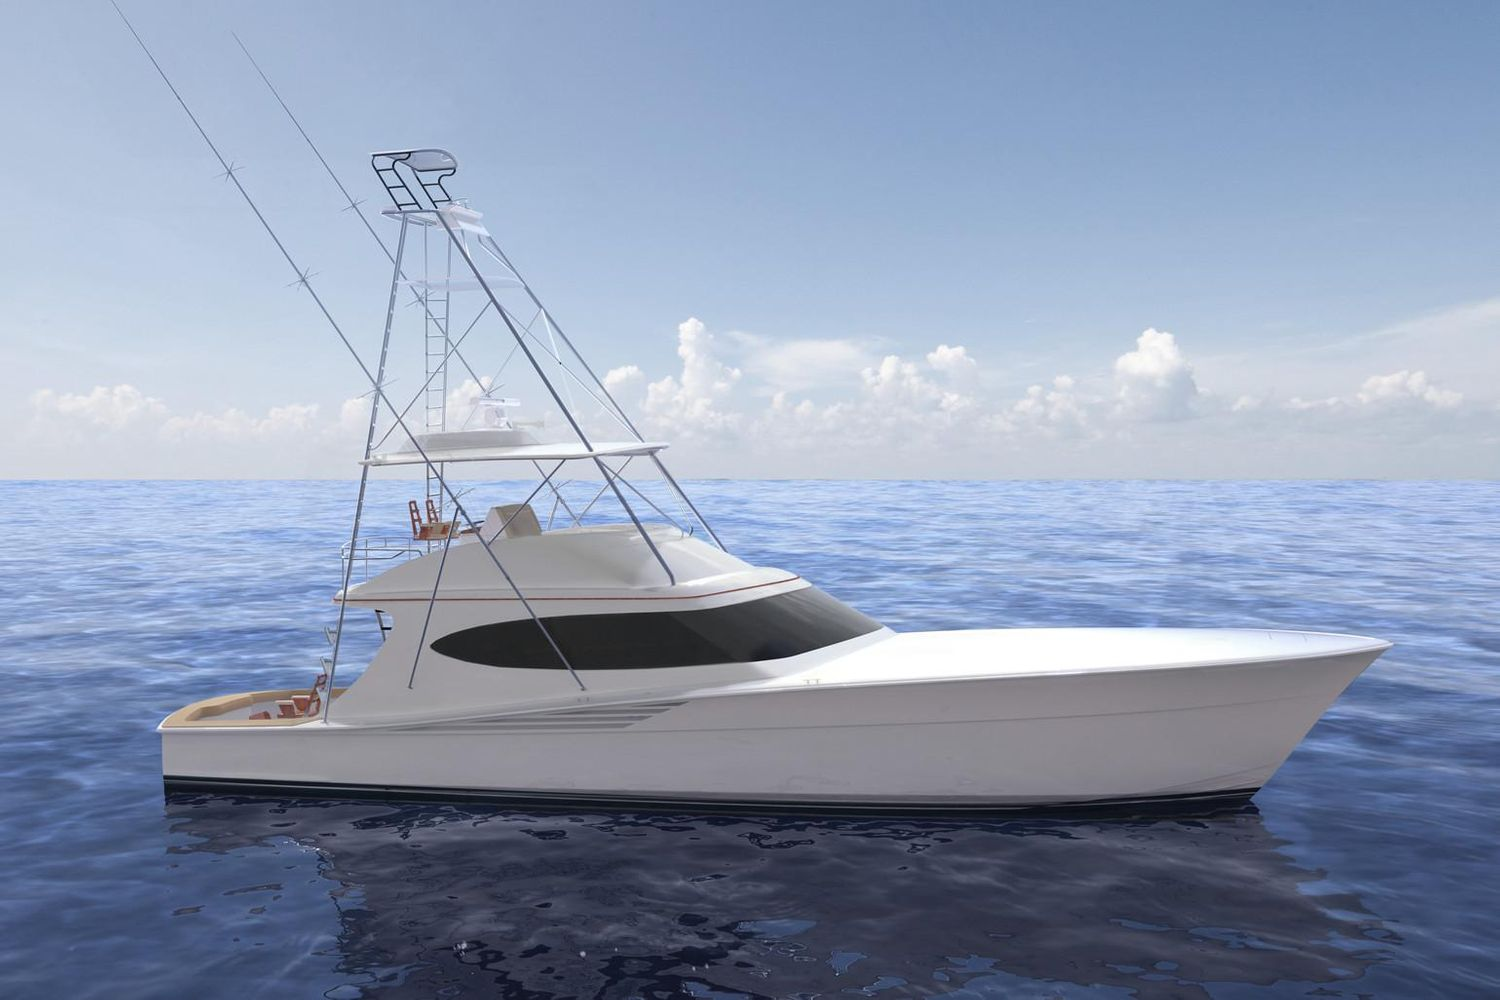 Thumbnail 1 for 2021 Hatteras GT65